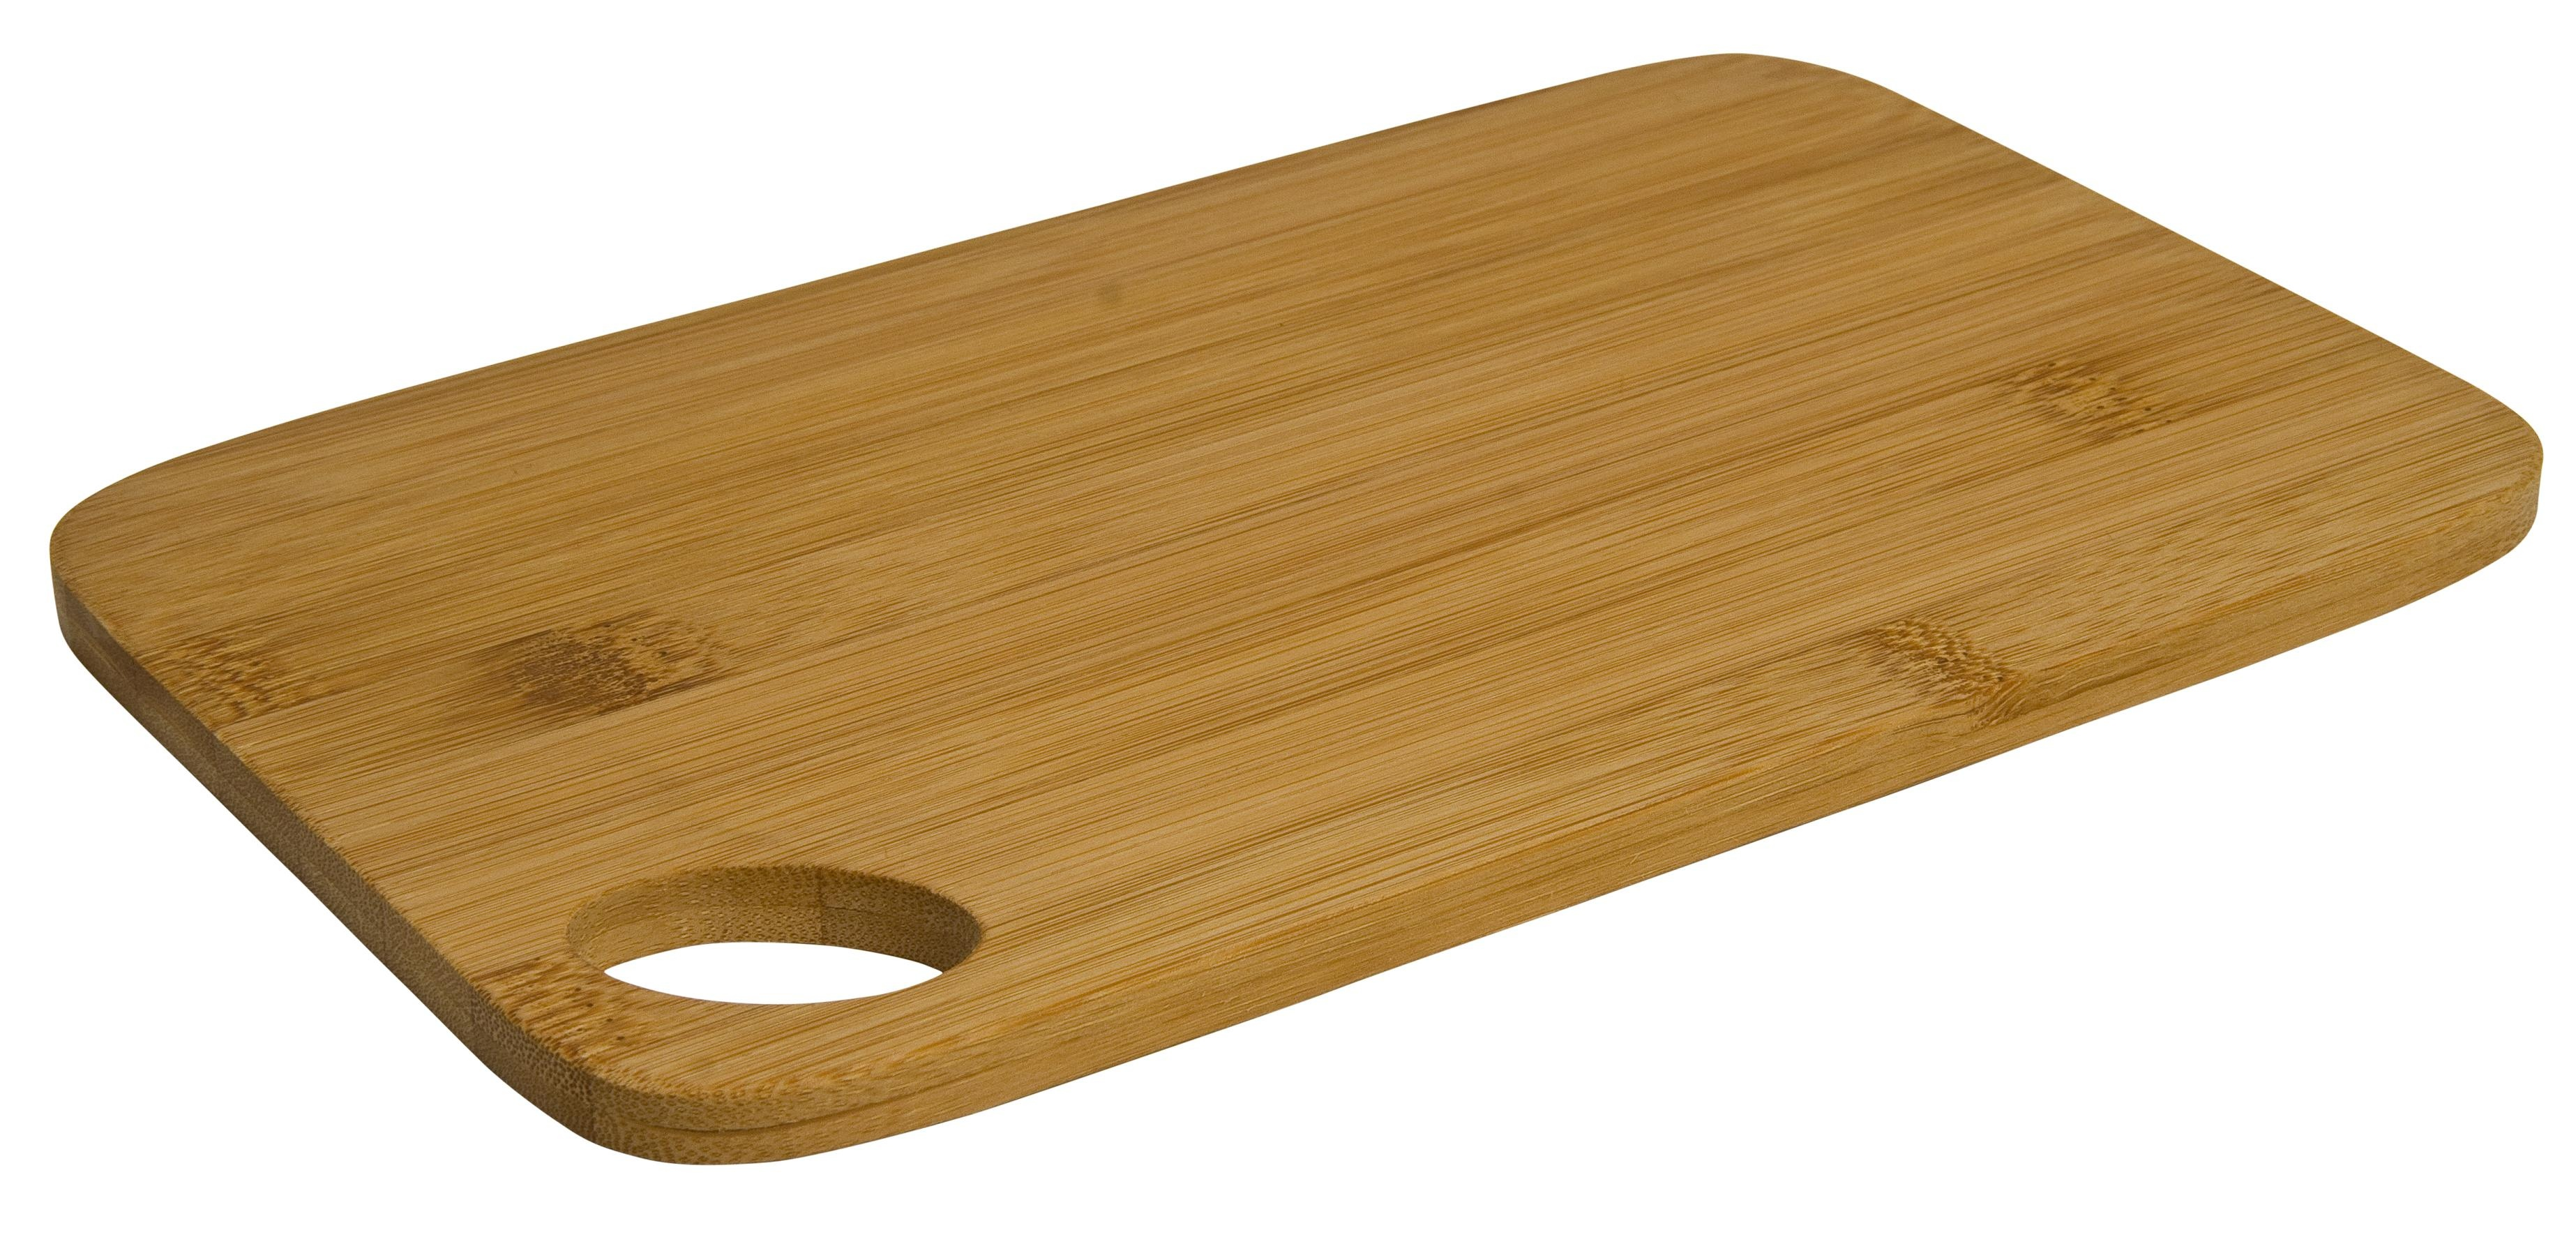 wildtextures-wooden-chopping-board-texture Cutting Board Kitchen Countertop